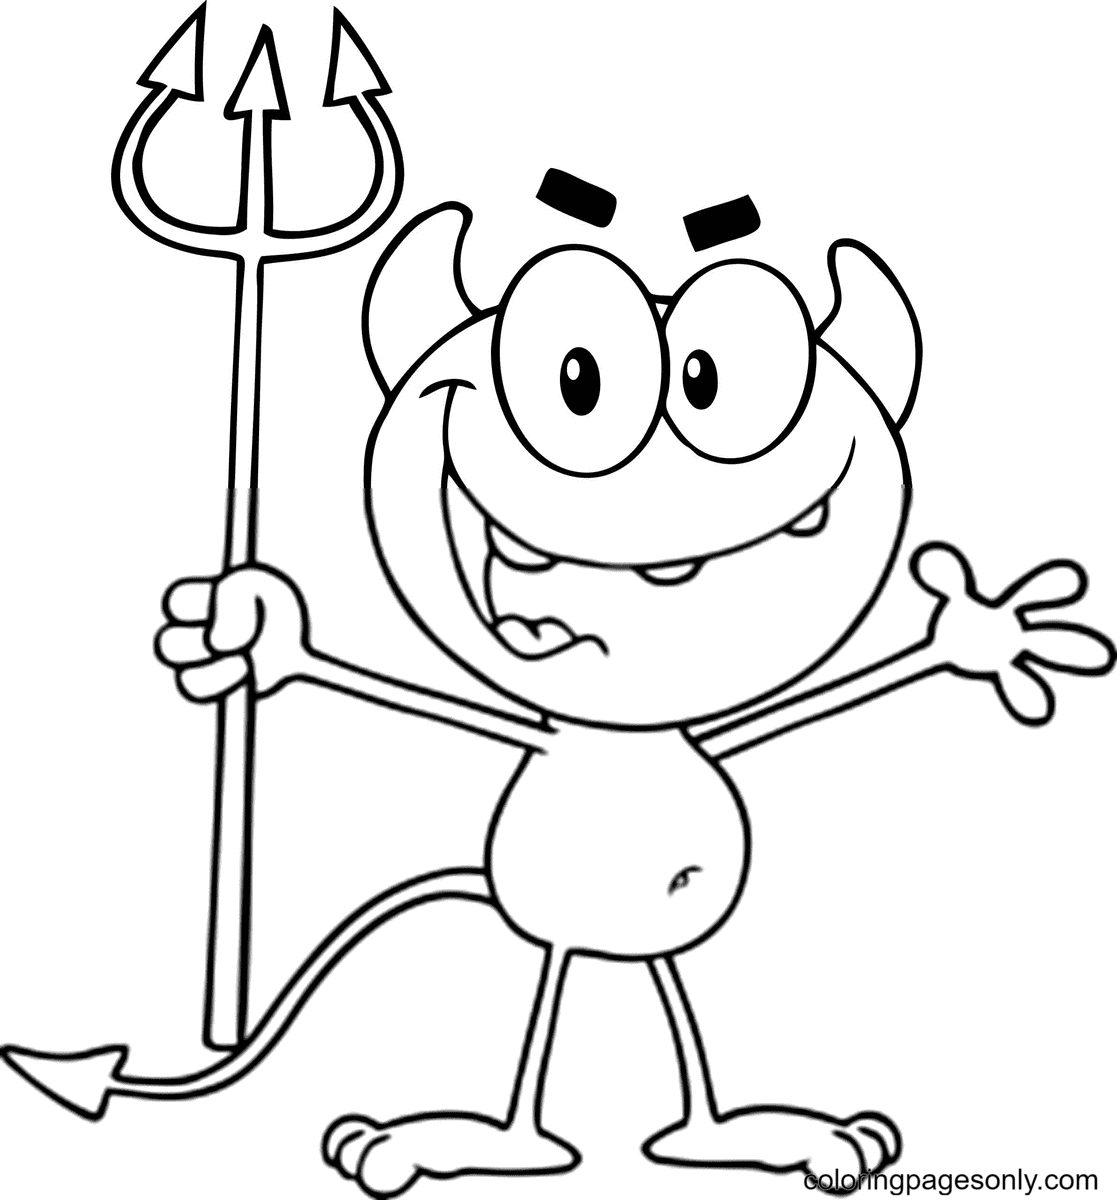 Cute Little Devil Holding up a Pitchfork Coloring Page